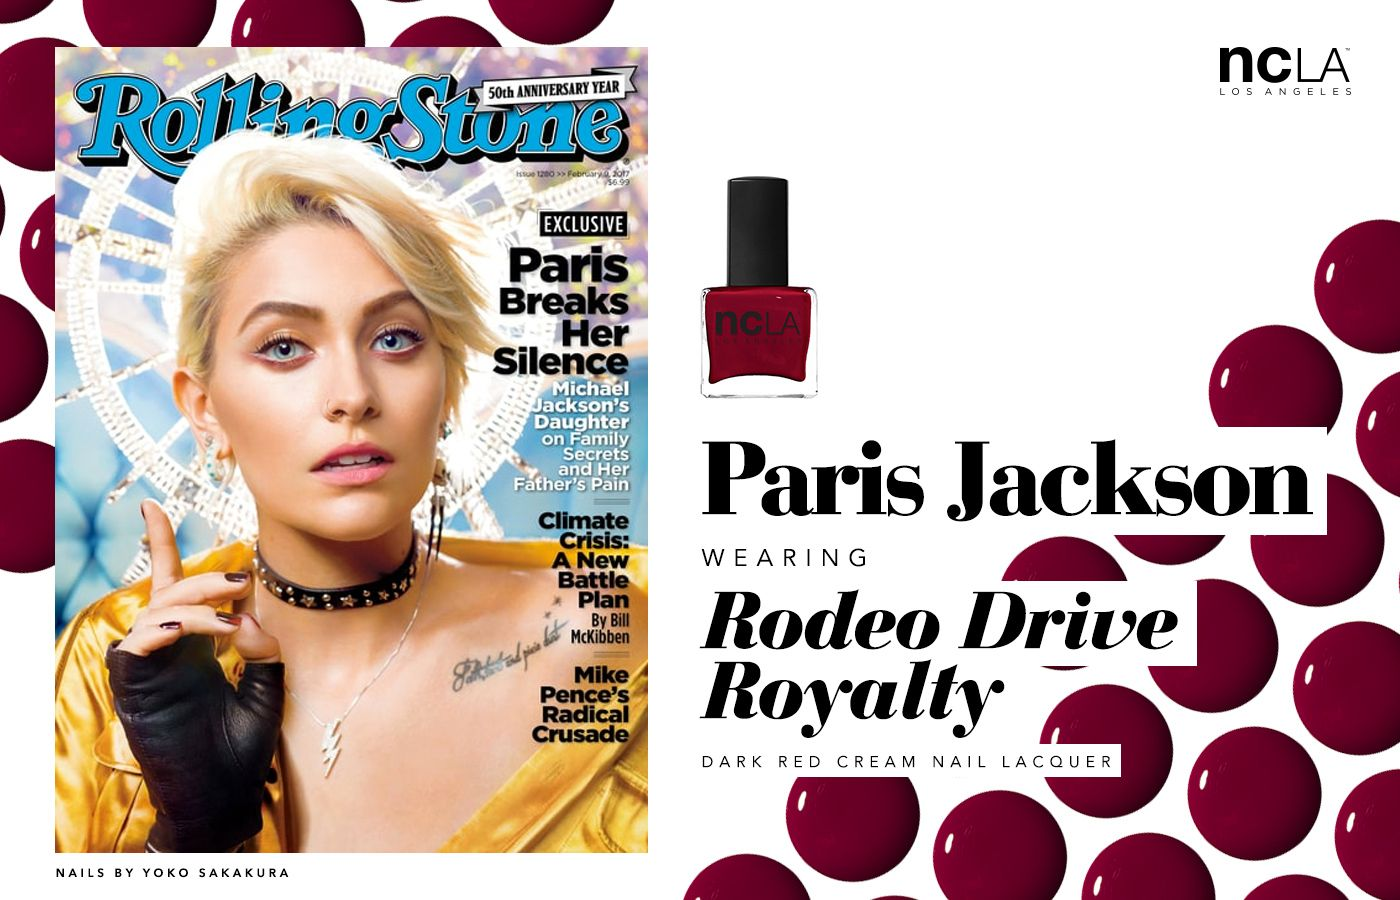 Paris Jackson Covers Rolling Stone Magazine In Ncla